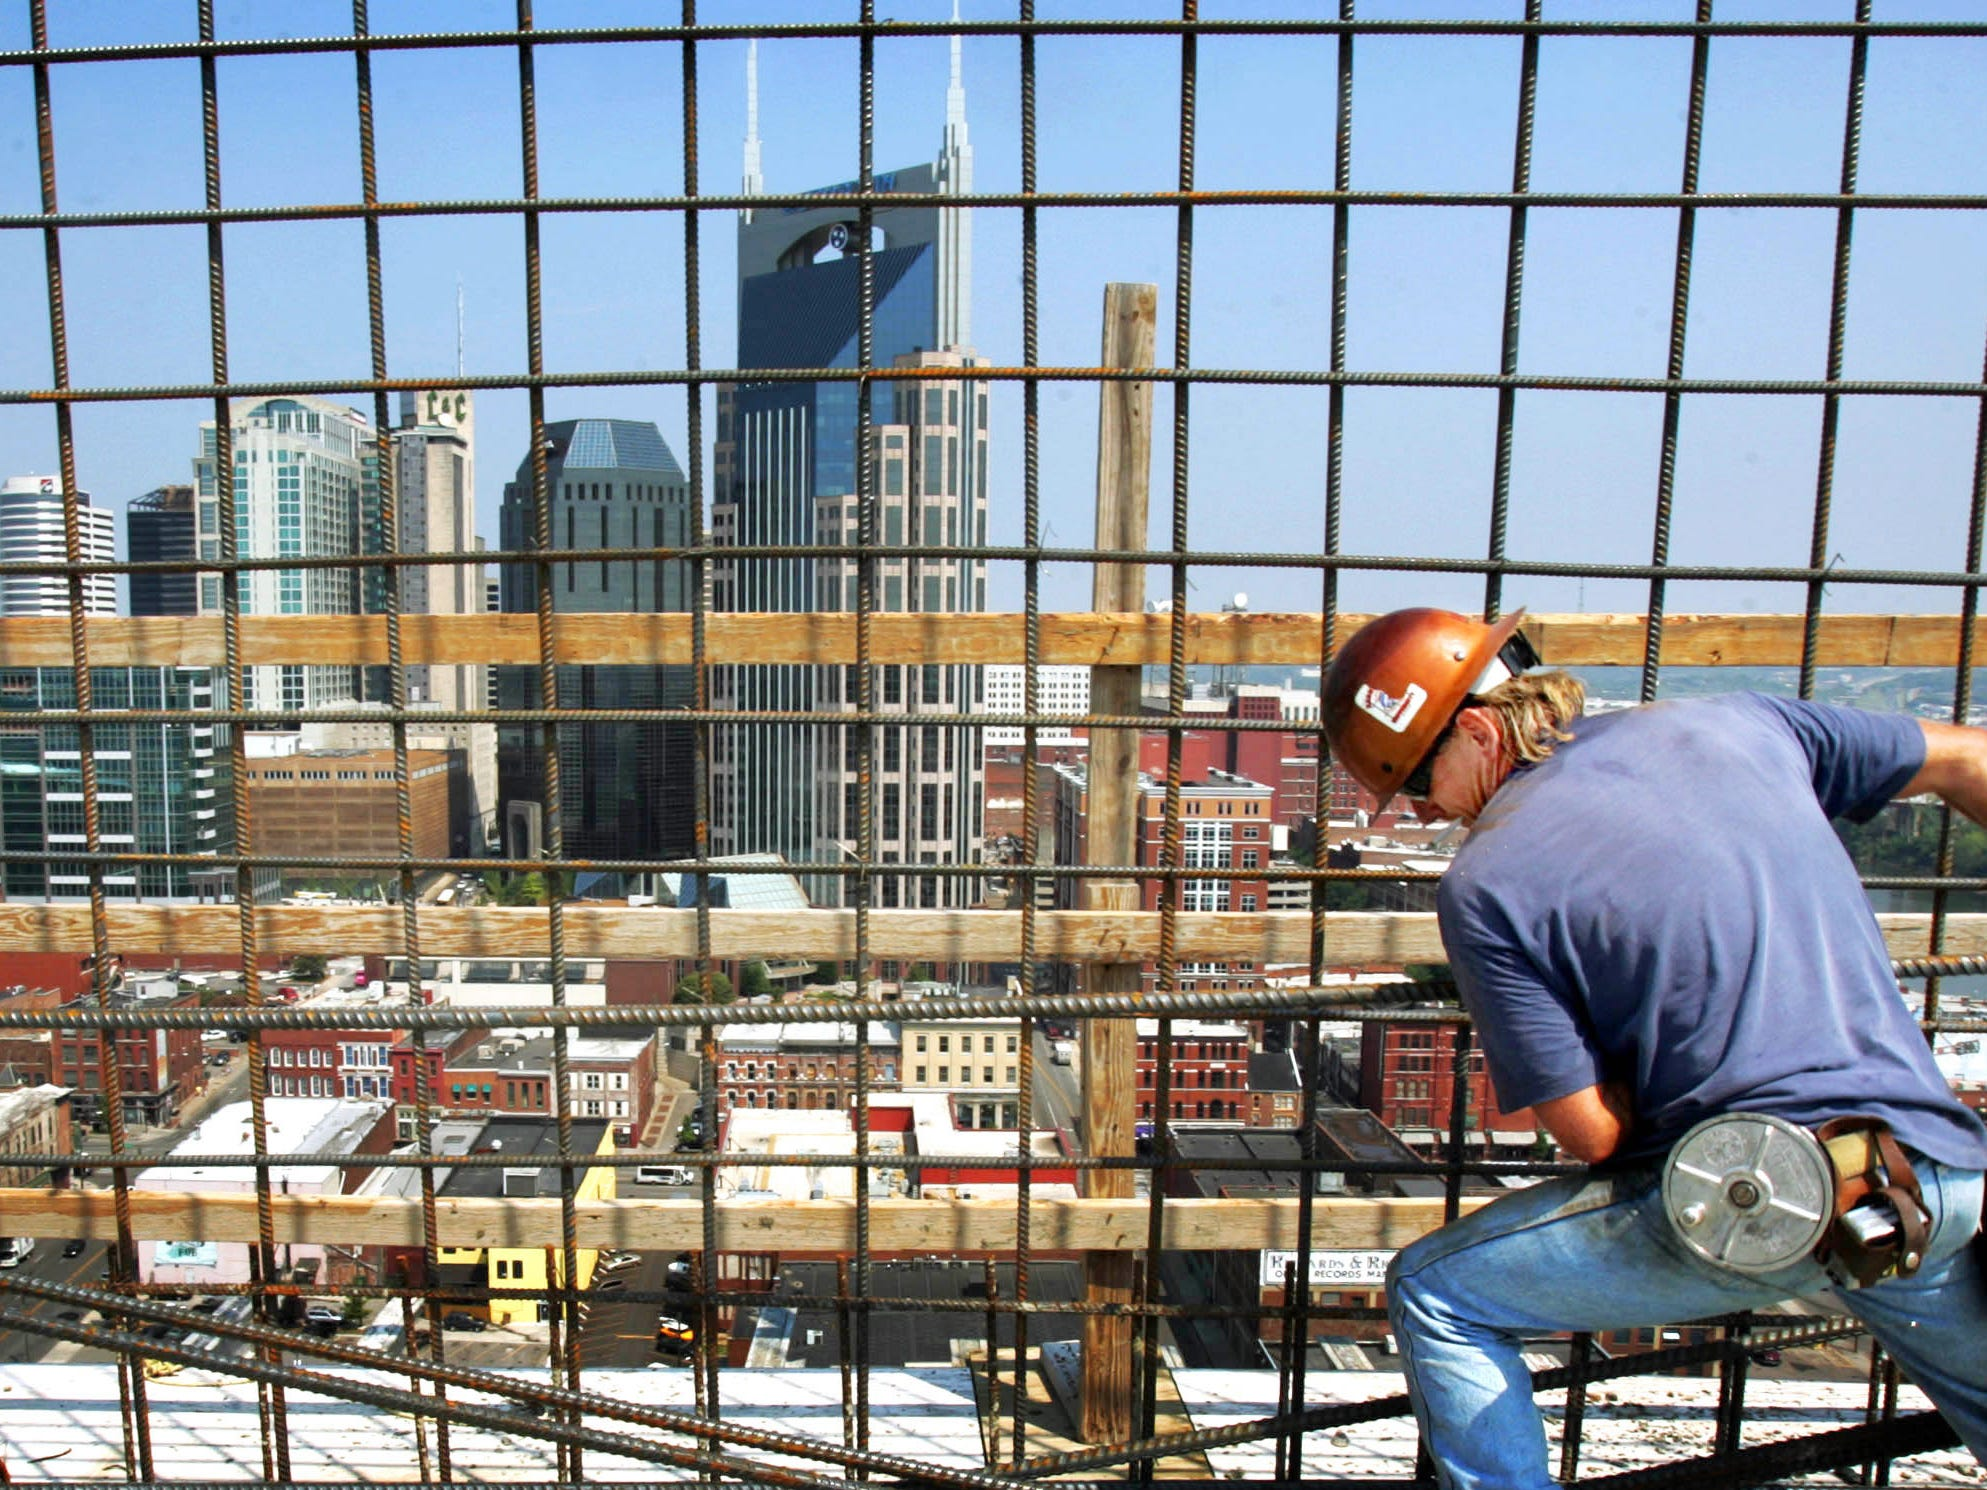 With the Nashville skyline in the background, Jeno Harmon installs rebar as he works on the top floor of the Encore building on Third Ave South July 26, 2007.